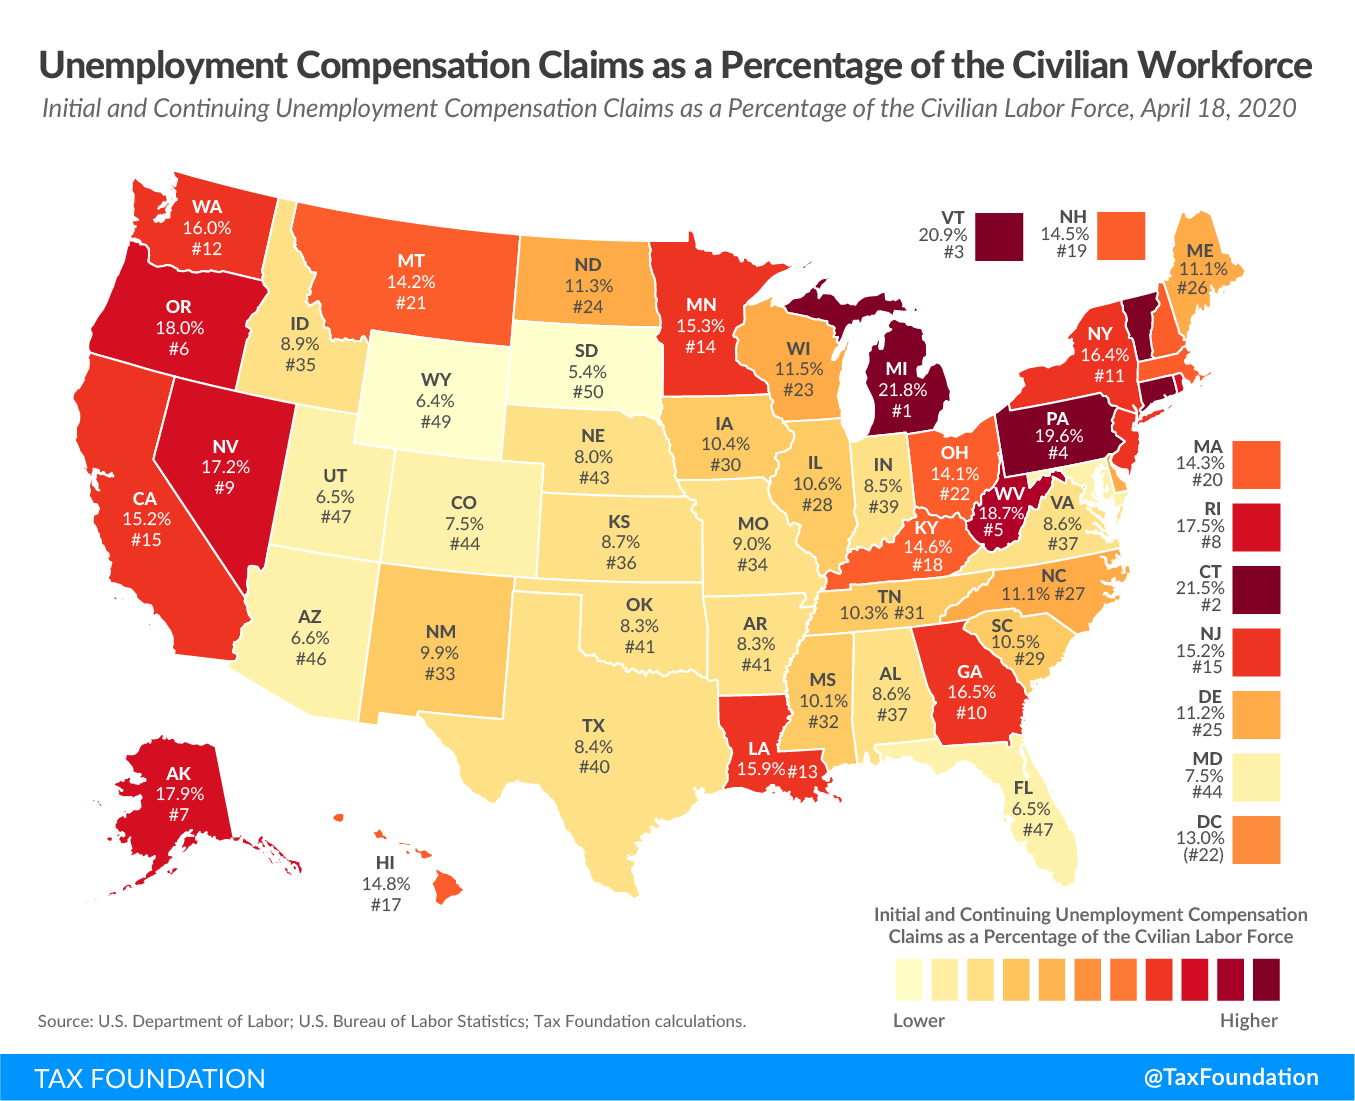 Approximately 12.5 percent of the U.S. civilian labor force has now applied for or is receiving unemployment compensation benefits (through April 18, the latest data) Percentage of jobless claims in the us workforce